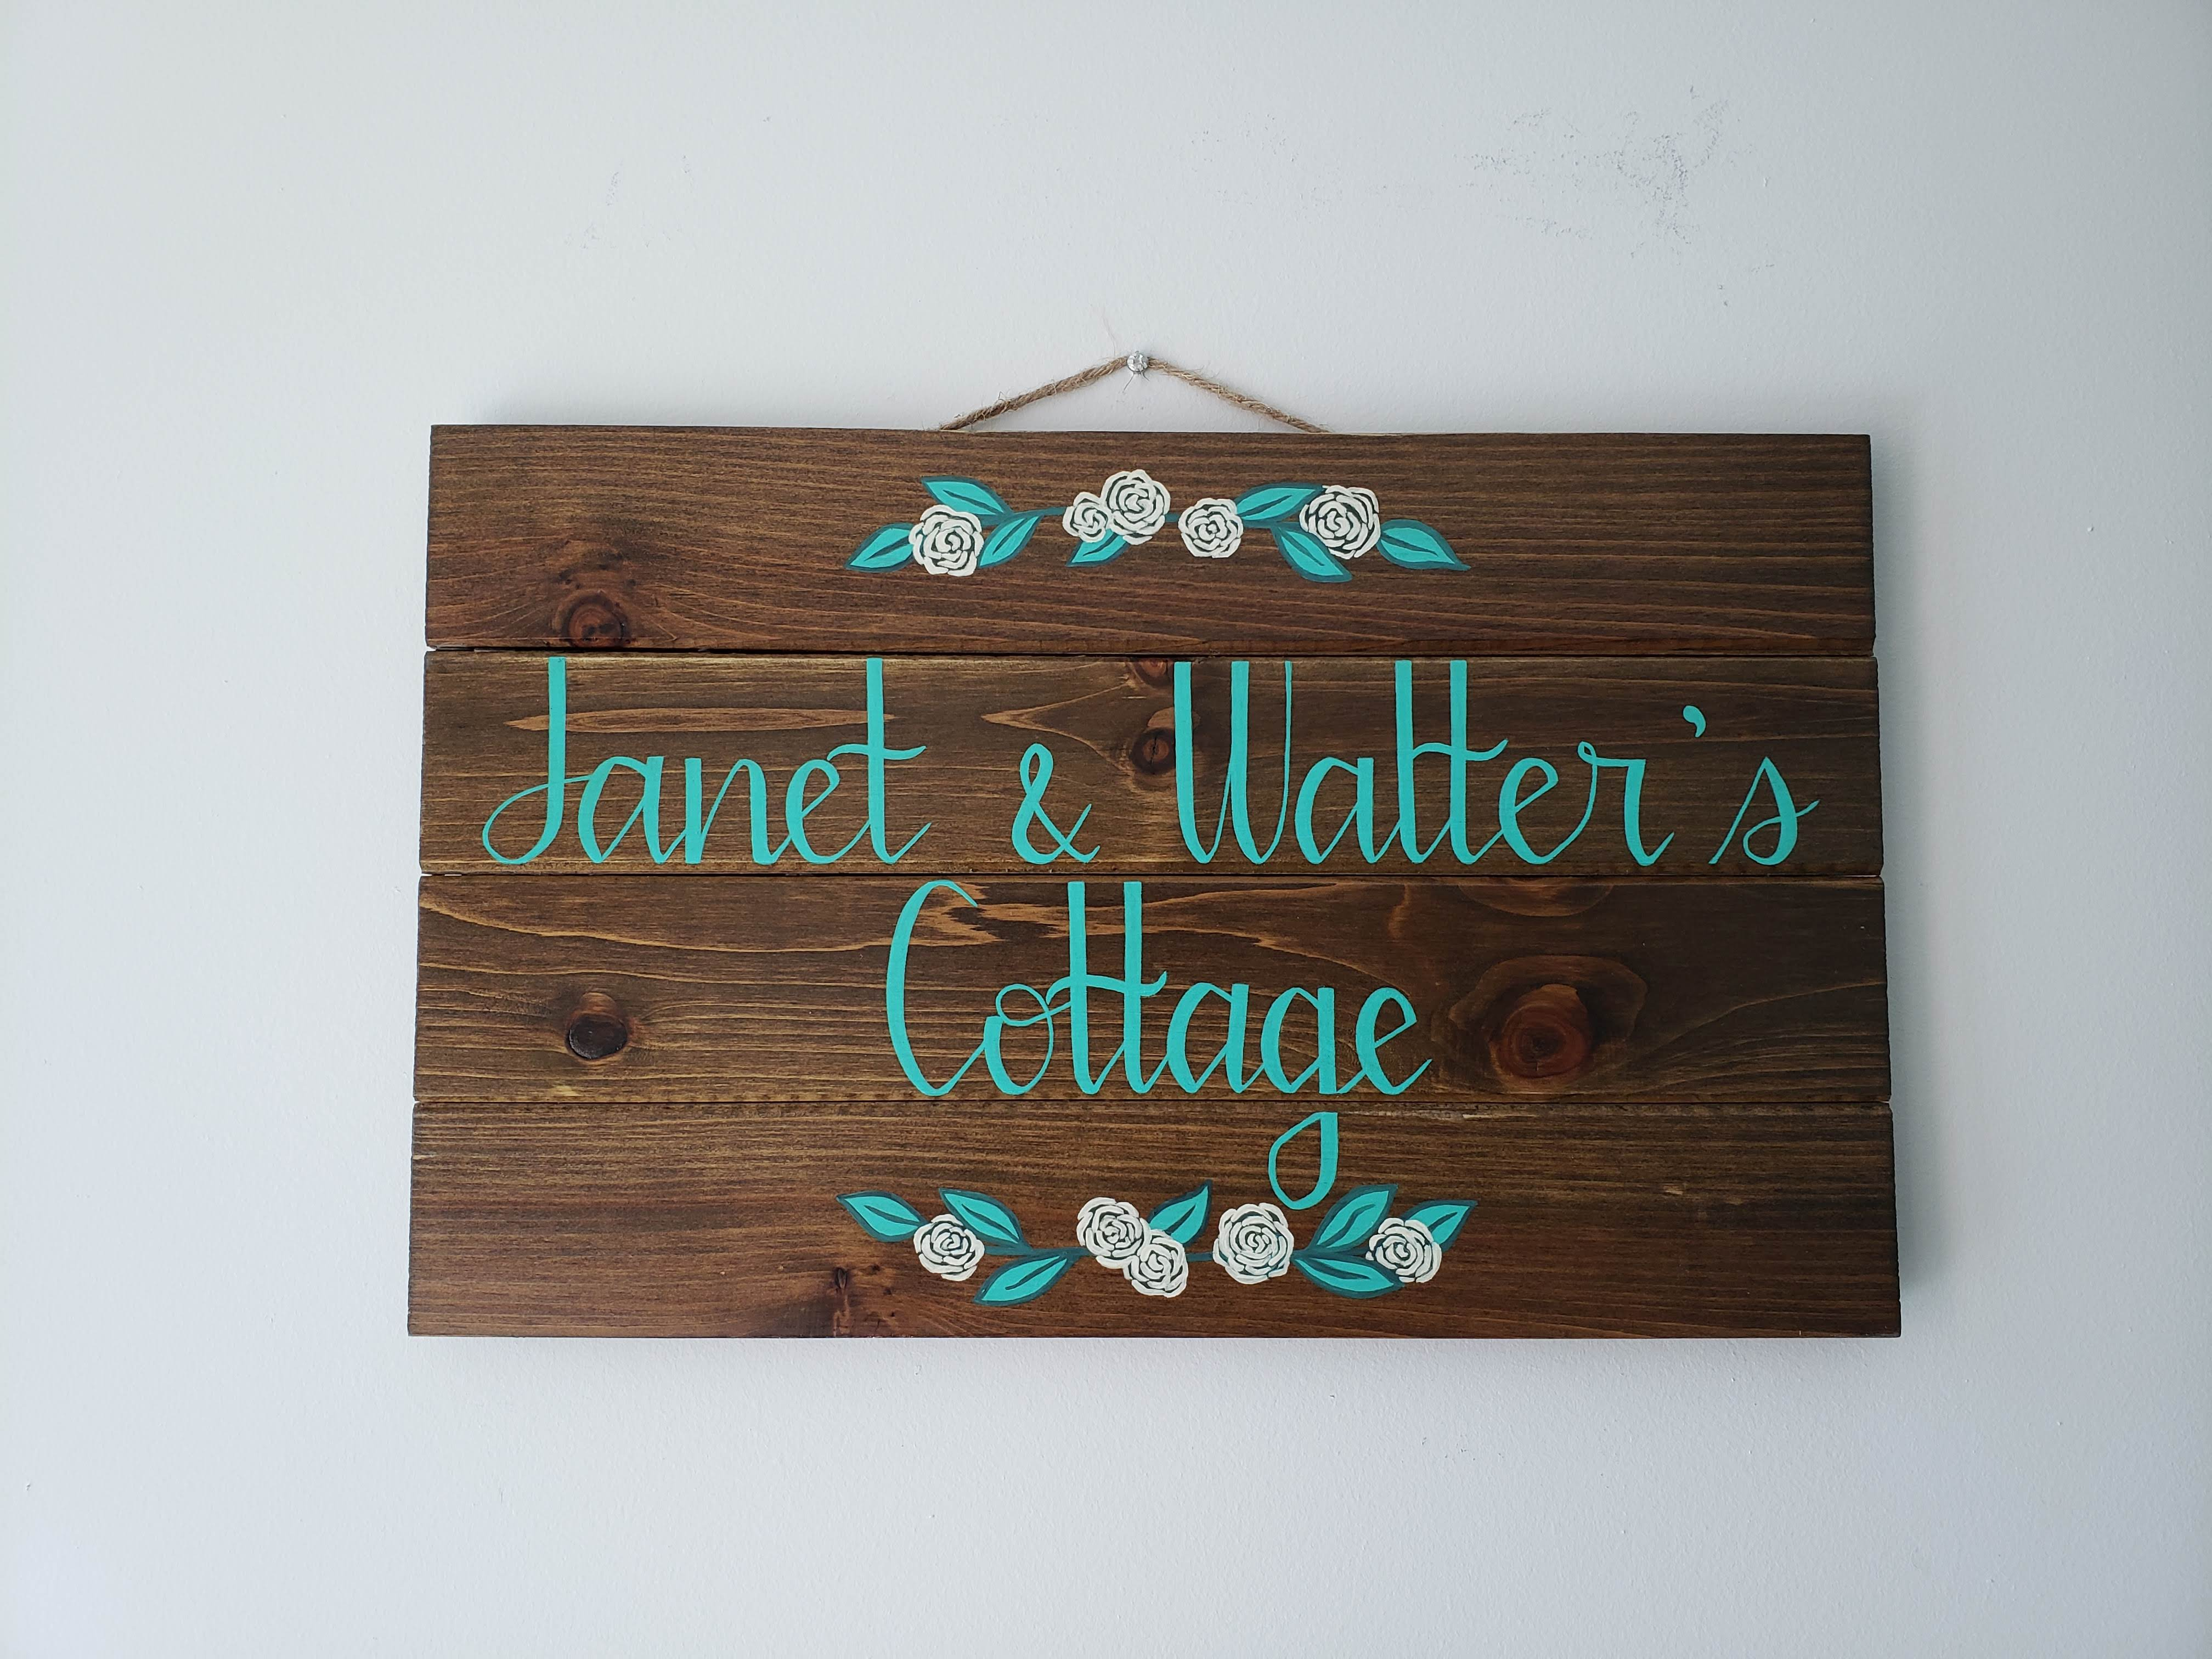 Janet & Walter's Cottage (2020)